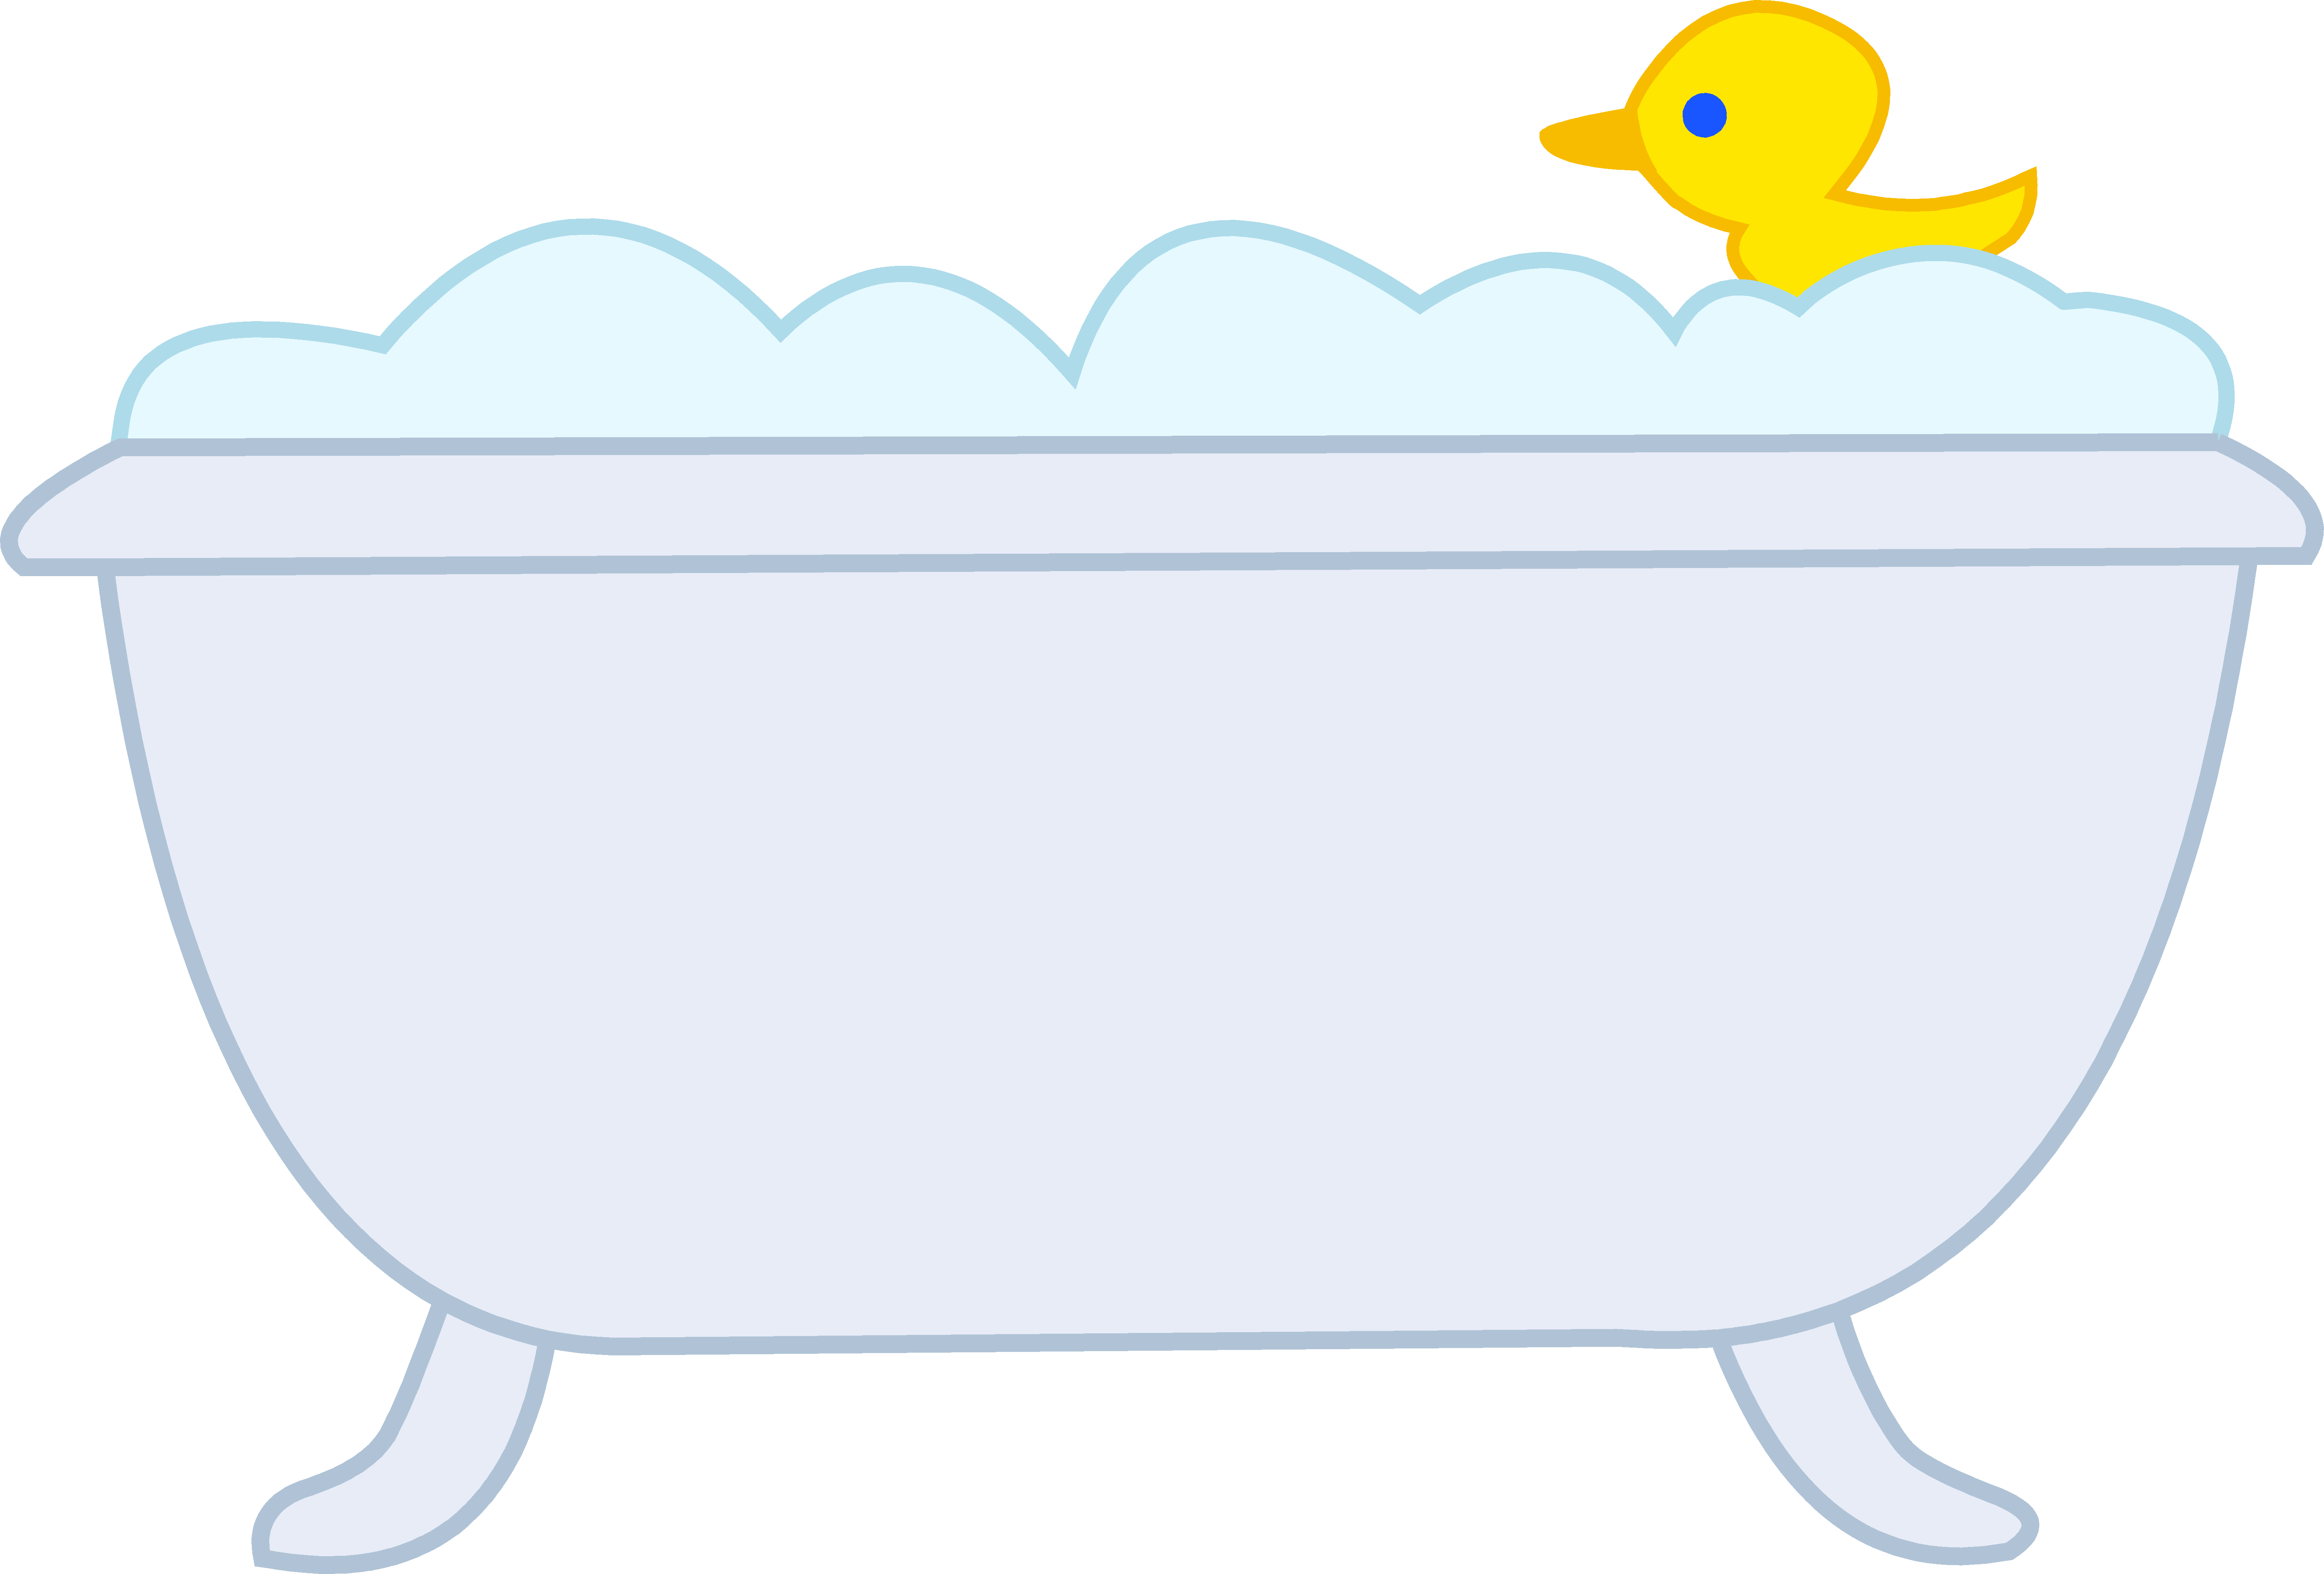 Bathing clipart bubbly. Bubble bath with rubber